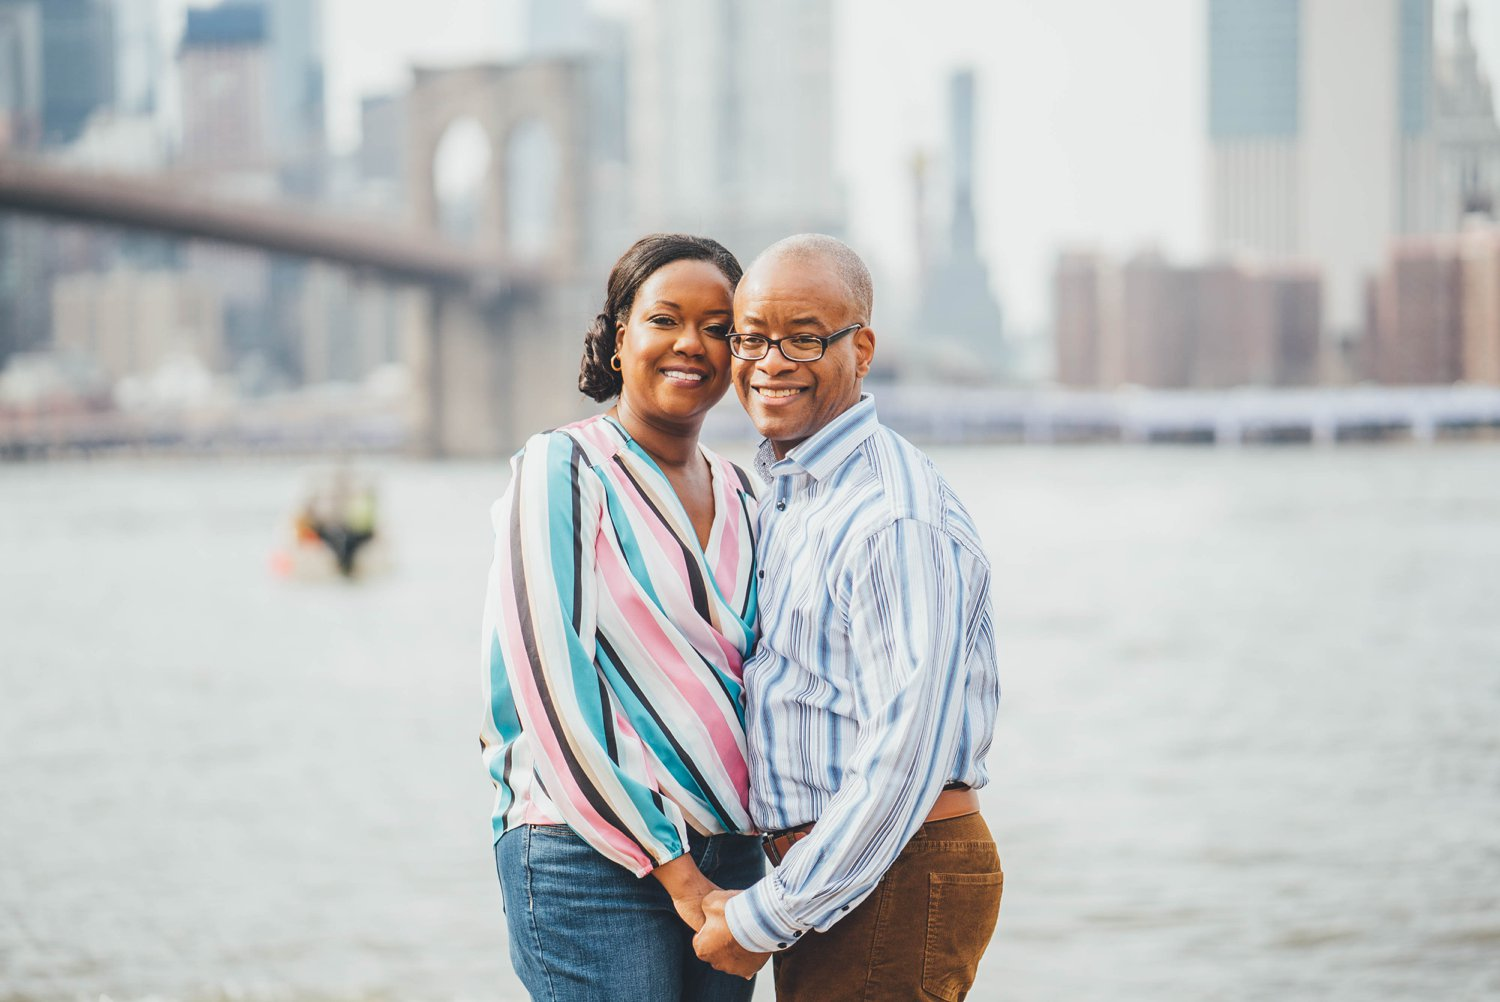 67NYC-NJ-ENGAGEMENT-PHOTOGRAPHY-BY-INTOTHESTORY-MOO-JAE.JPG